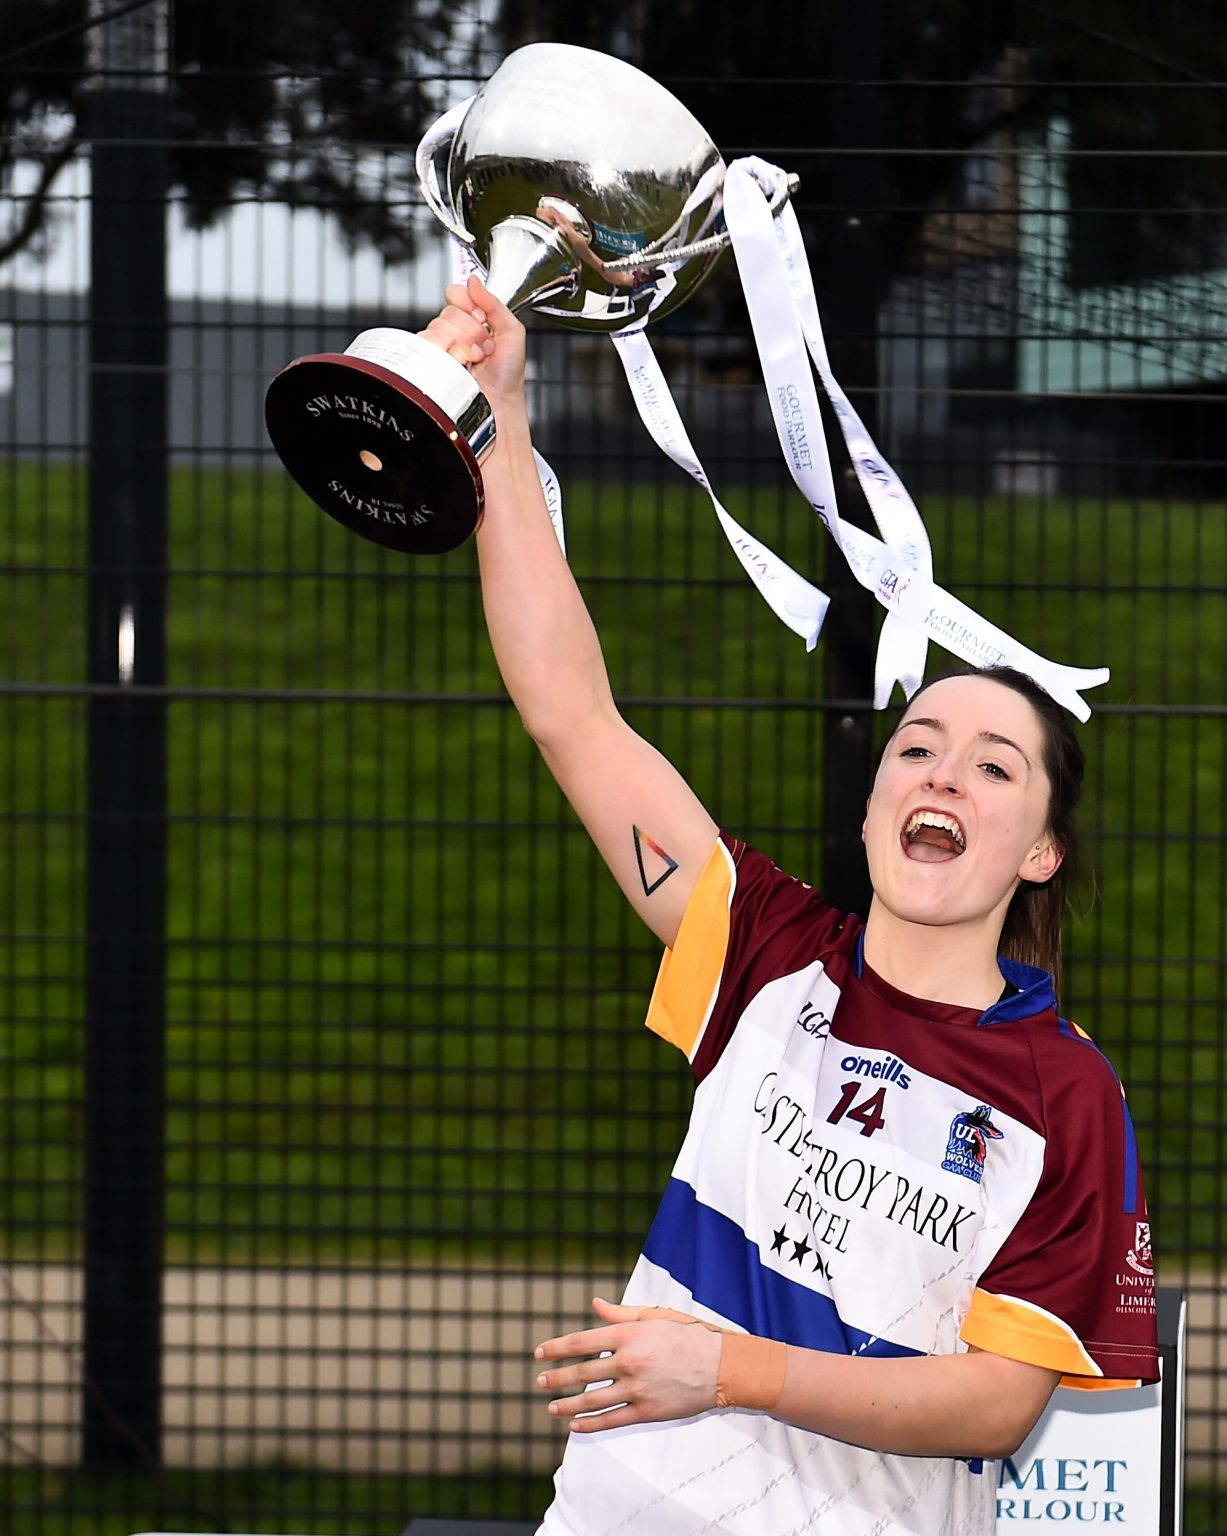 UL Captain in a white jersey with maroon sleeves lifts the O'Connor Cup